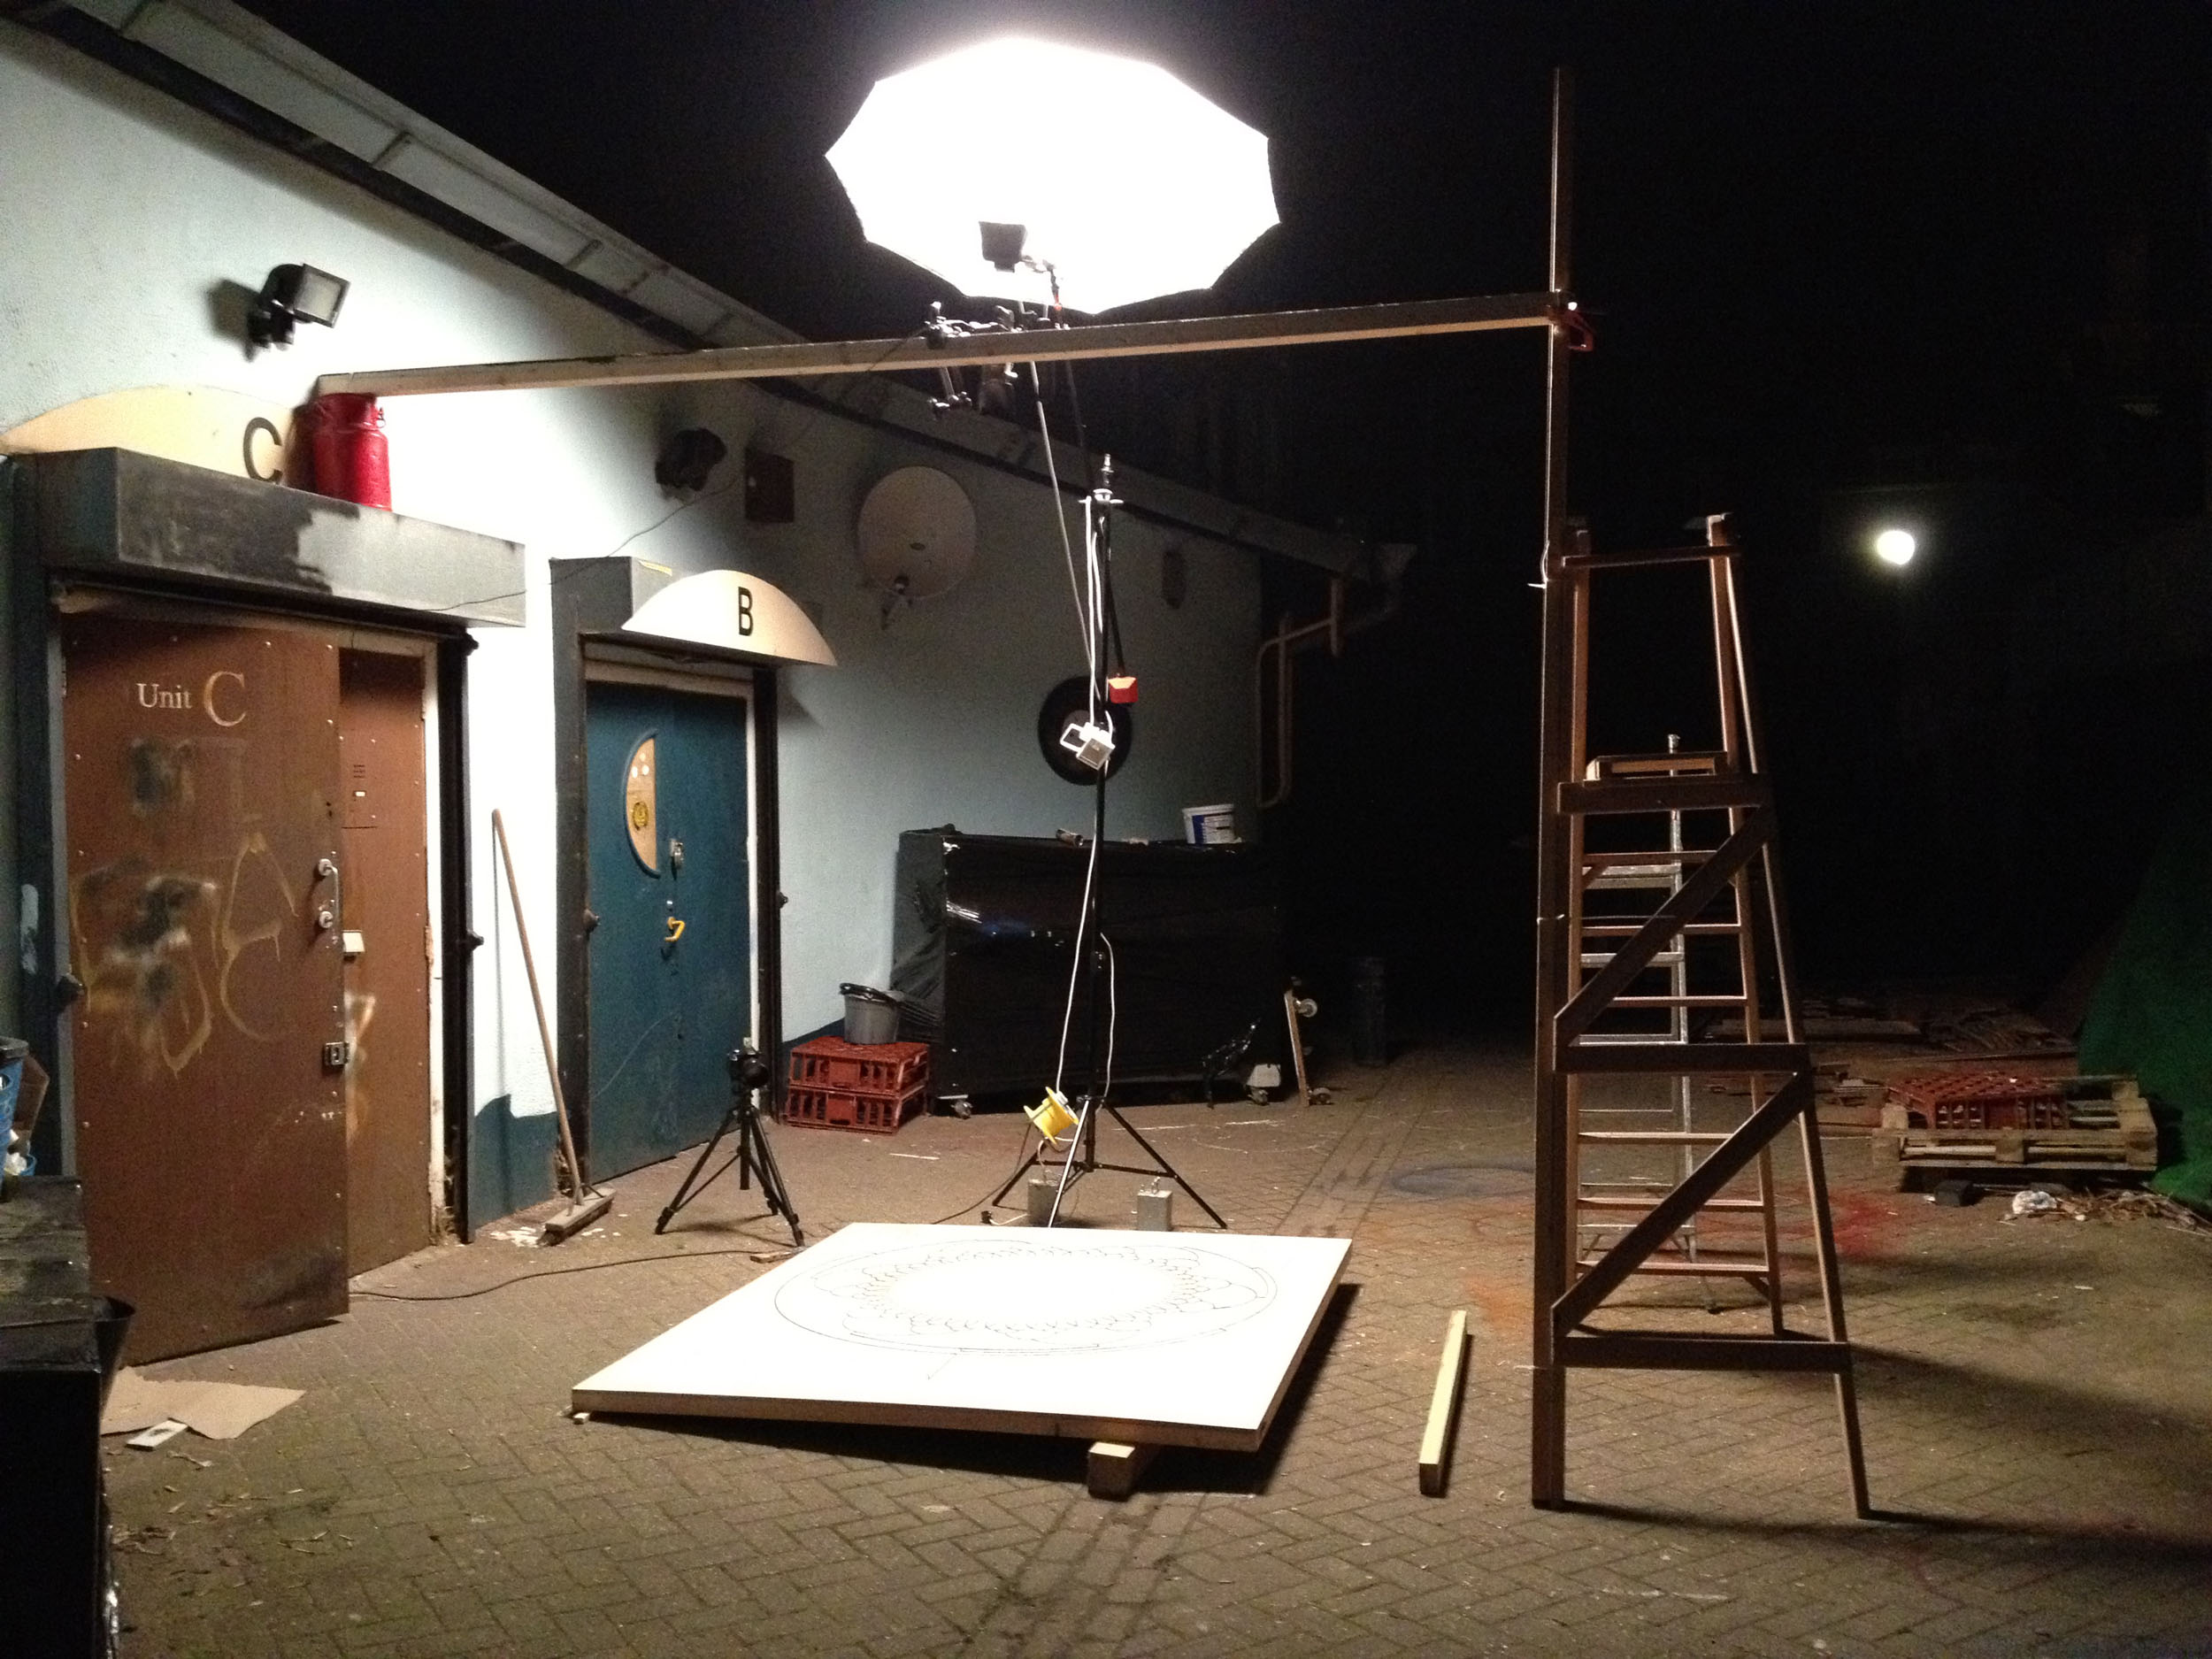 A behind the scenes photo from the Fire Drawings Film showing camera and lights setup